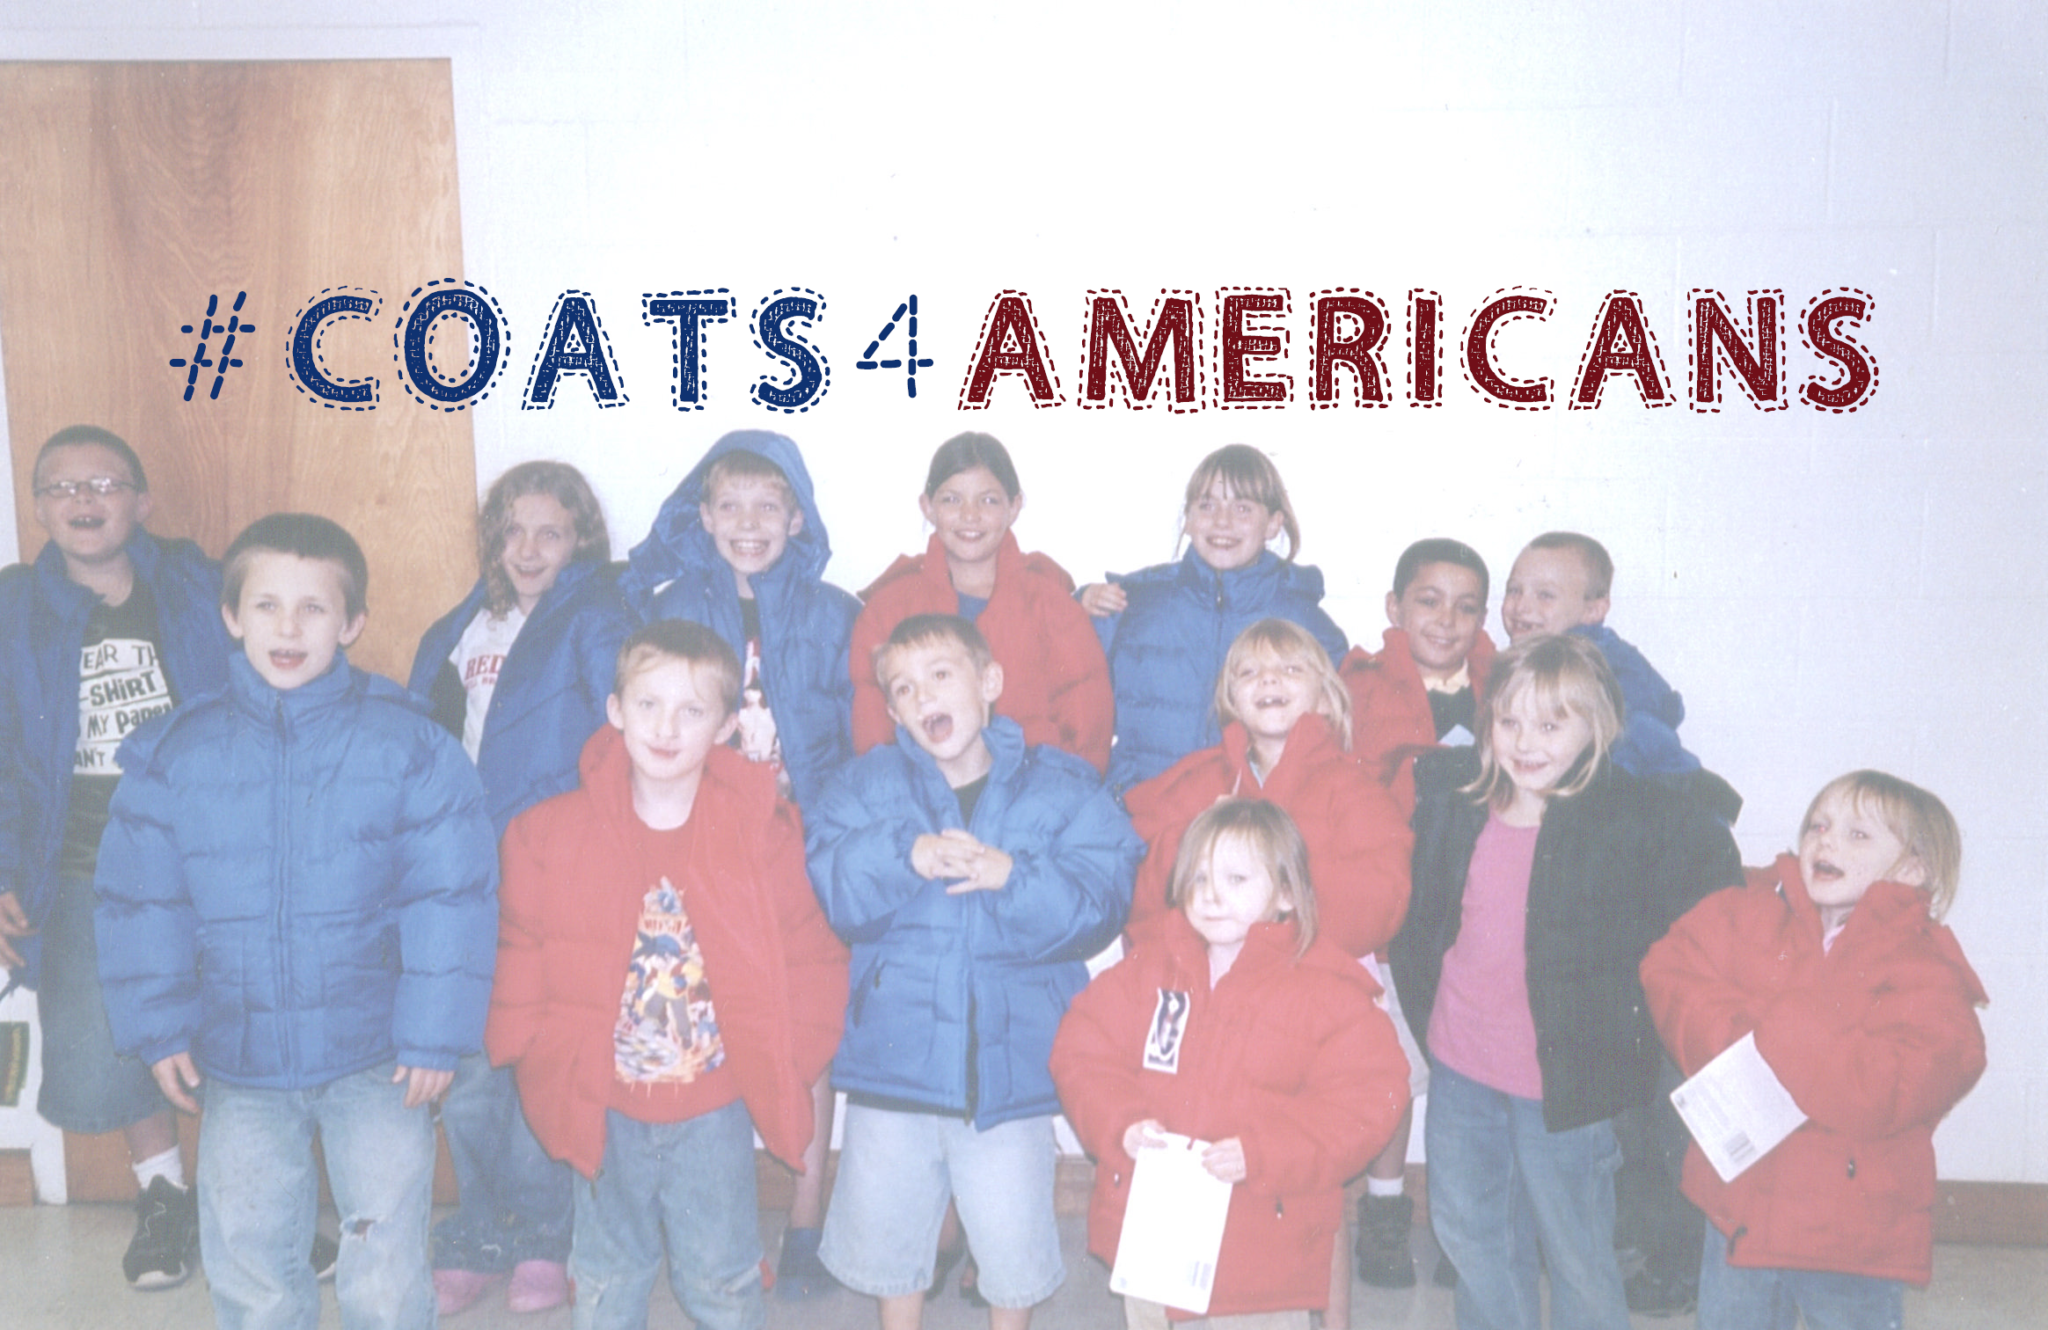 Why Do We Need #Coats4Americans?